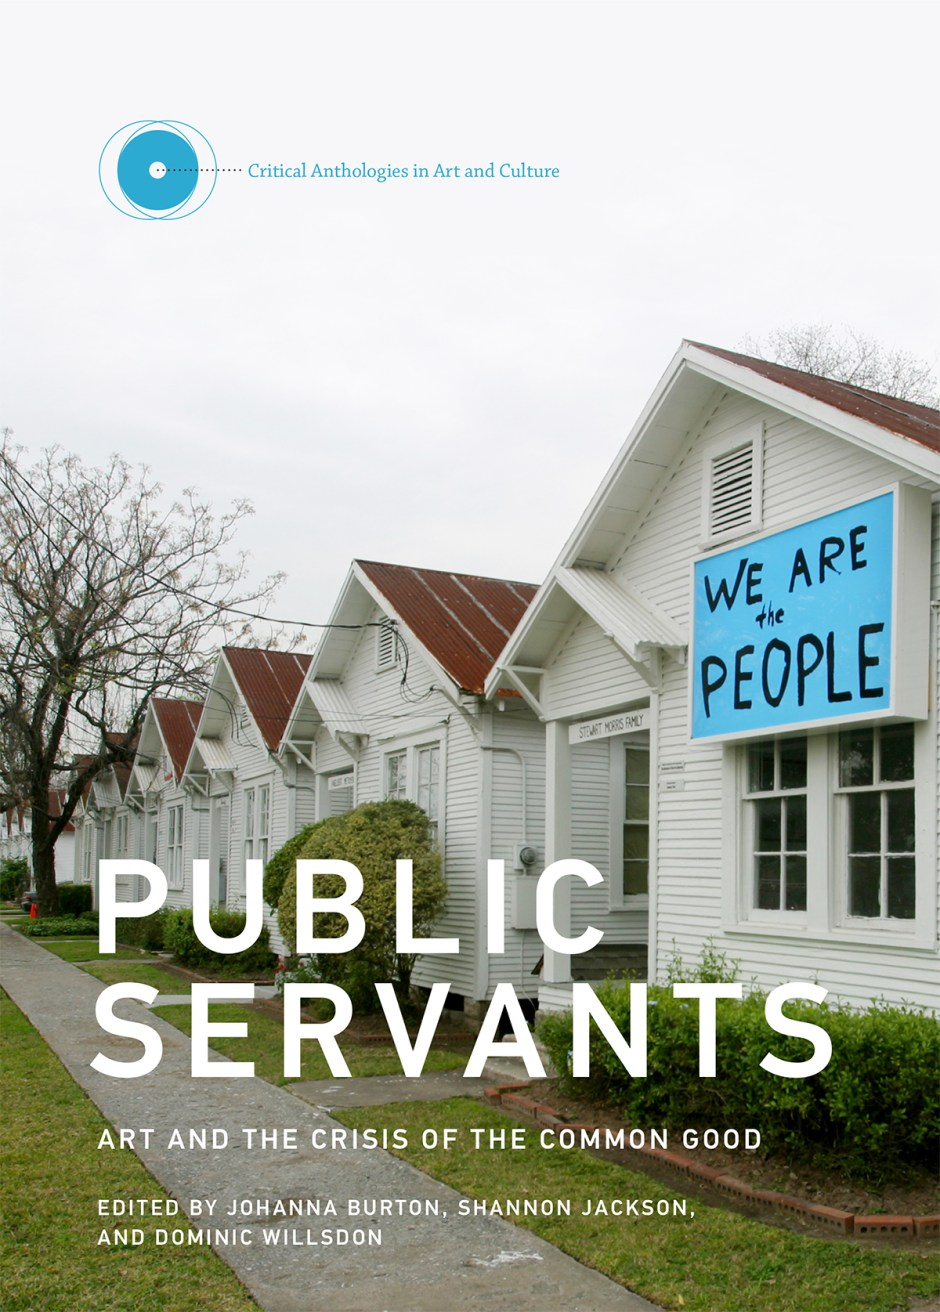 Book review – Public Servants. Art and the Crisis of the Common Good